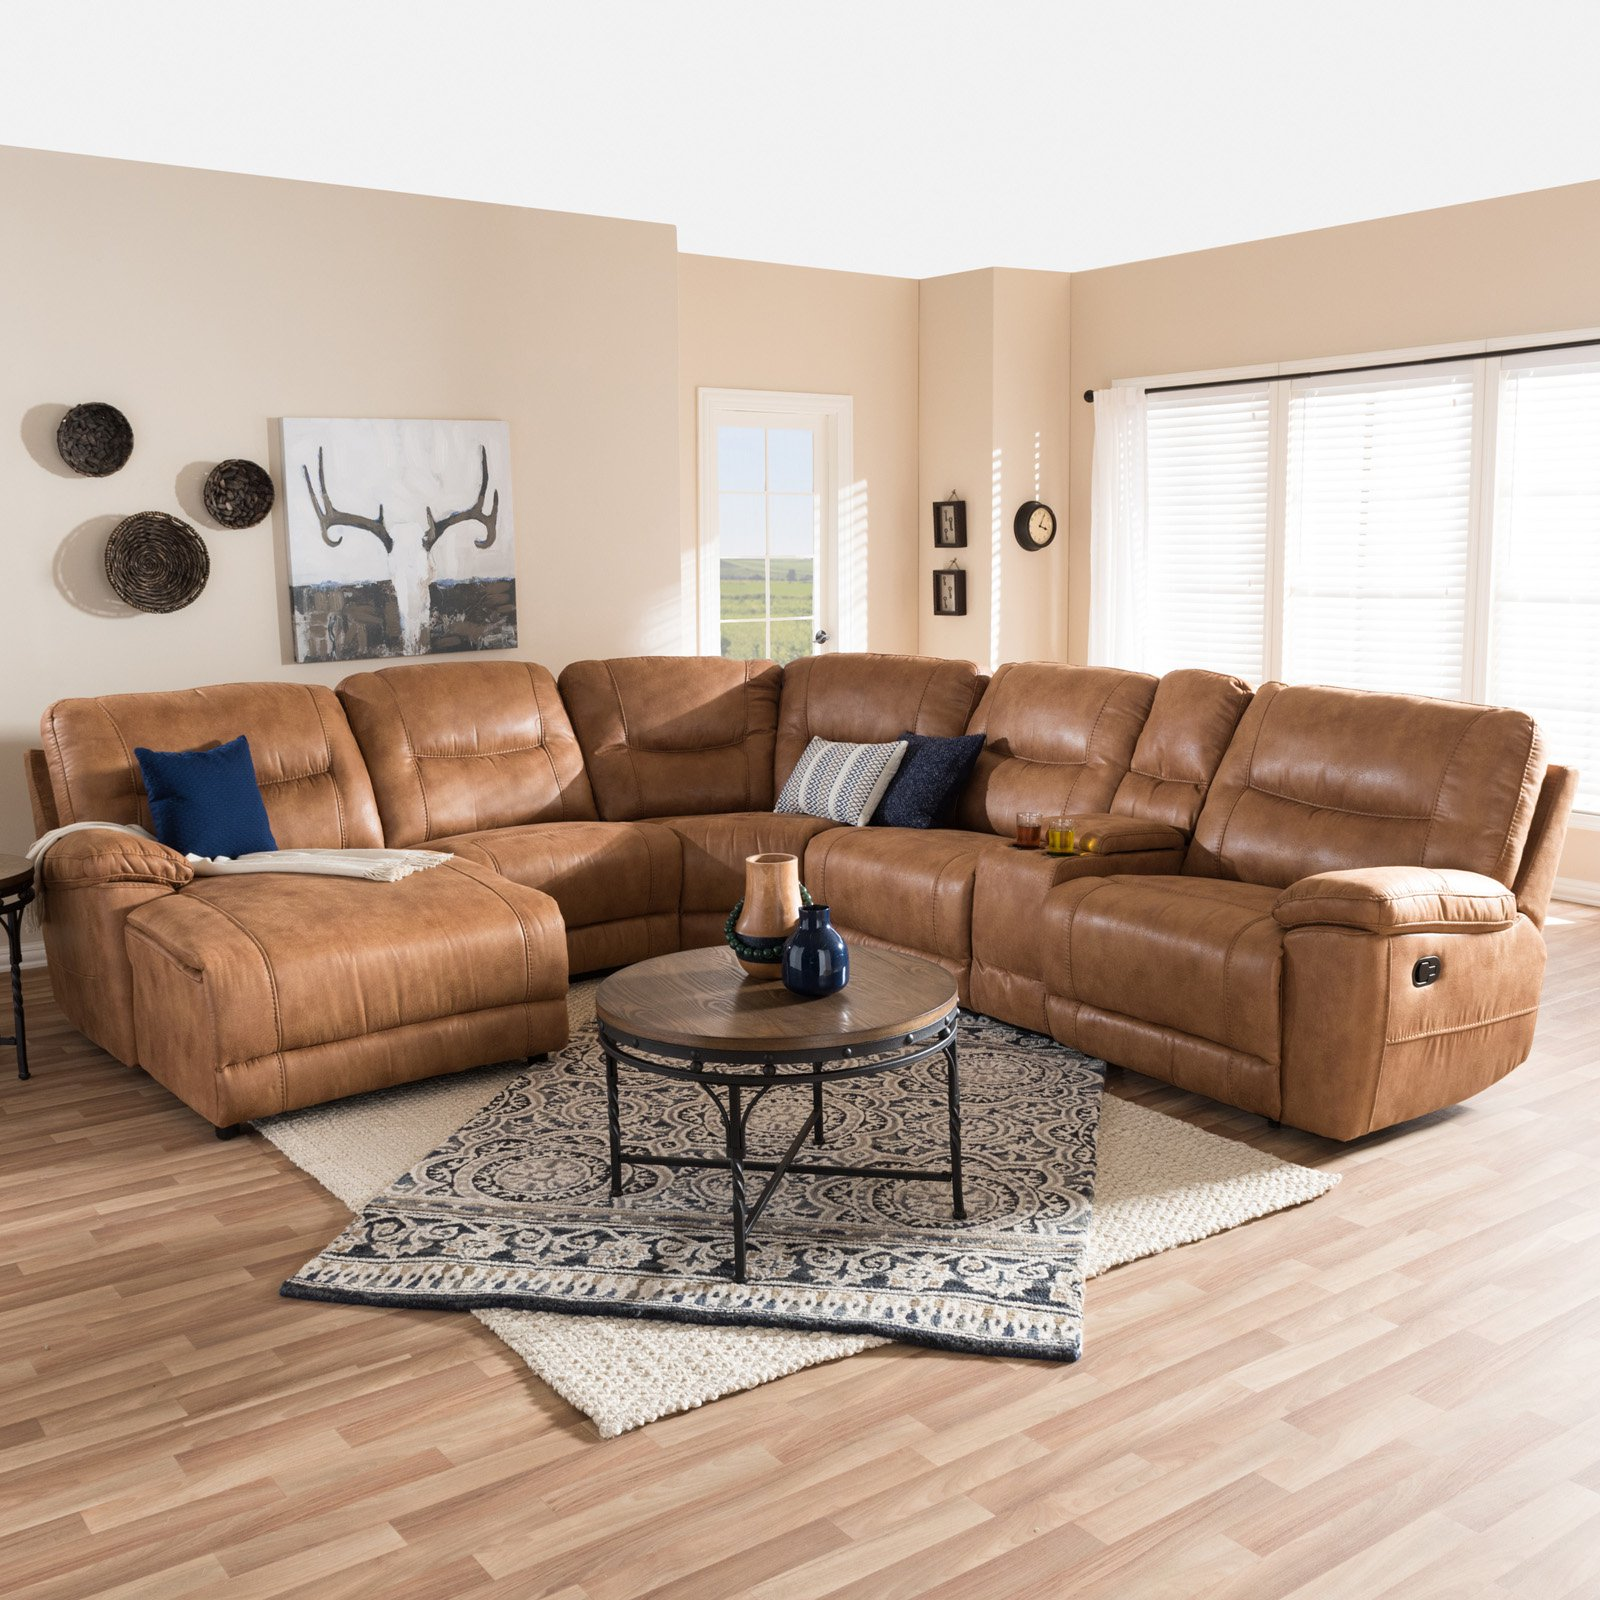 Baxton Studio Mistral Modern and Contemporary Light Brown Palomino Suede 6-Piece Sectional with Recliners Corner Lounge Suite